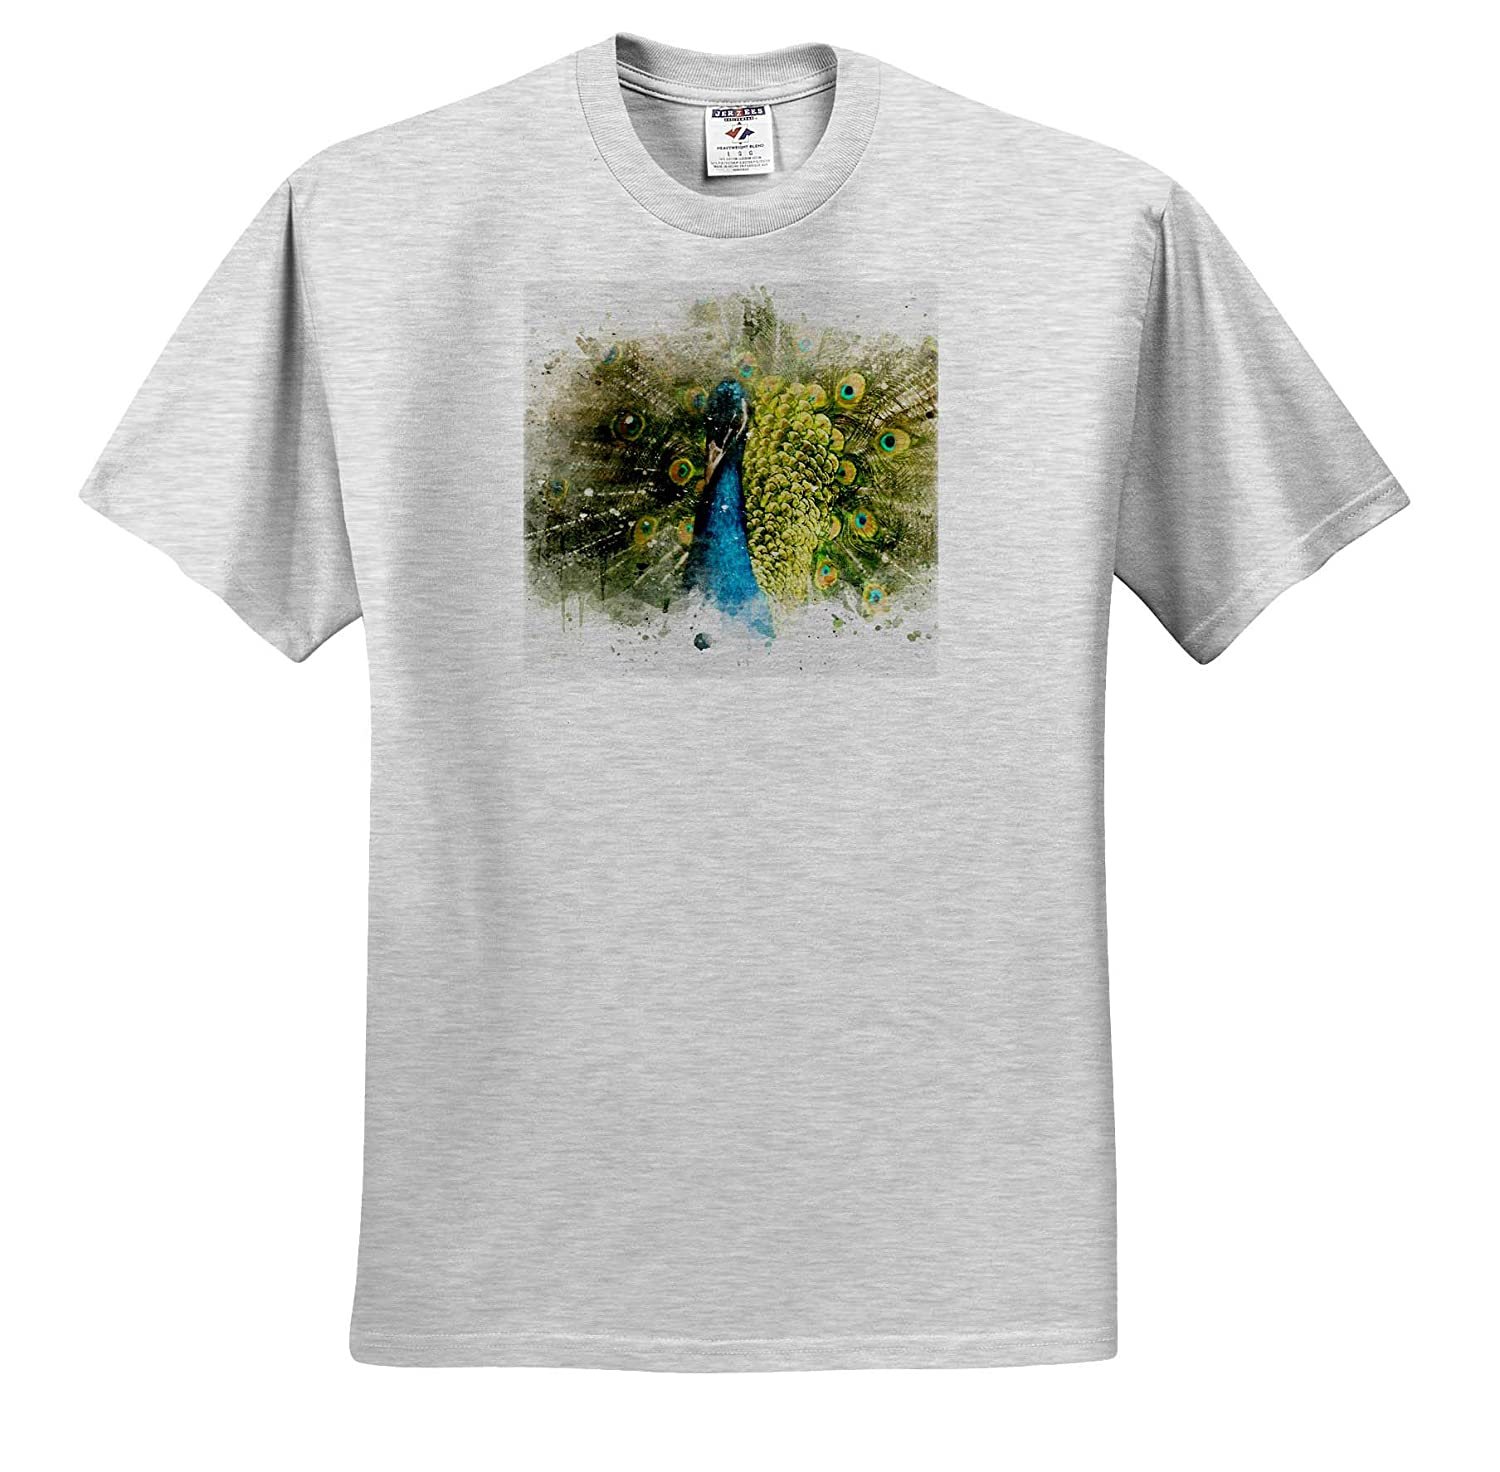 Adult T-Shirt XL Image of Watercolor Peacock Art Impressionist Mixed Media Art 3dRose Anne Marie Baugh ts/_318671